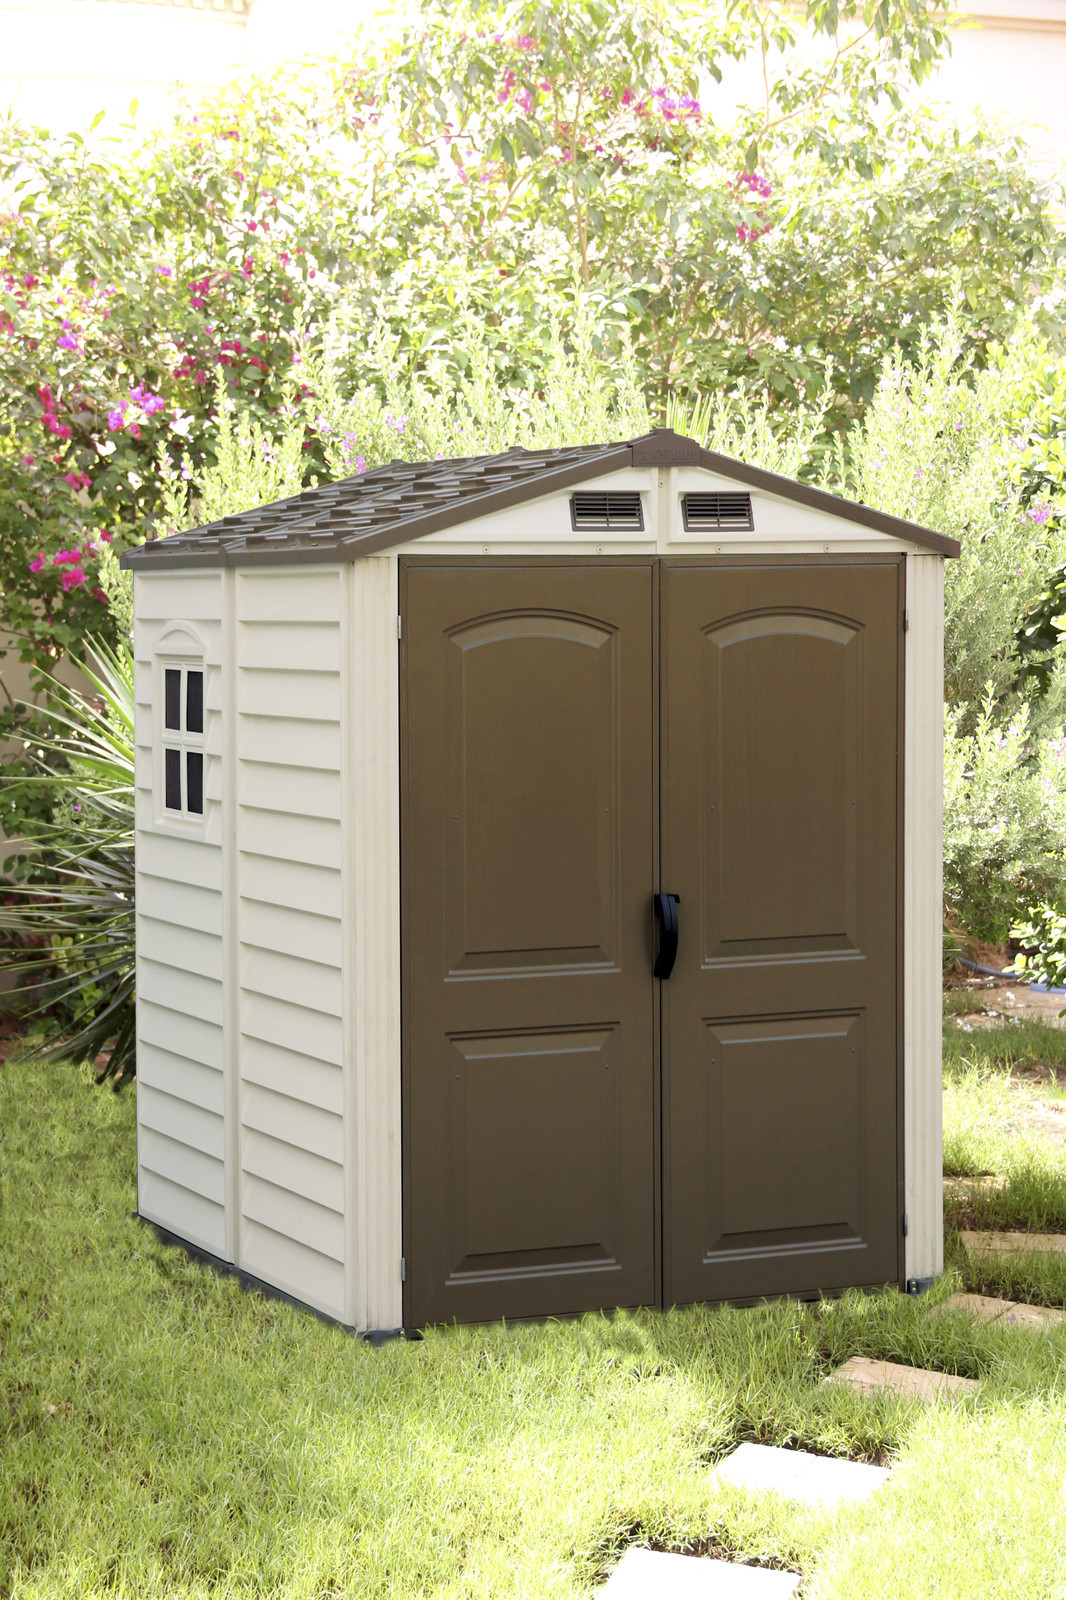 Duramax 30411 storemate vinyl storage shed 6x6 75 9 x 74 for Garden shed 6x6